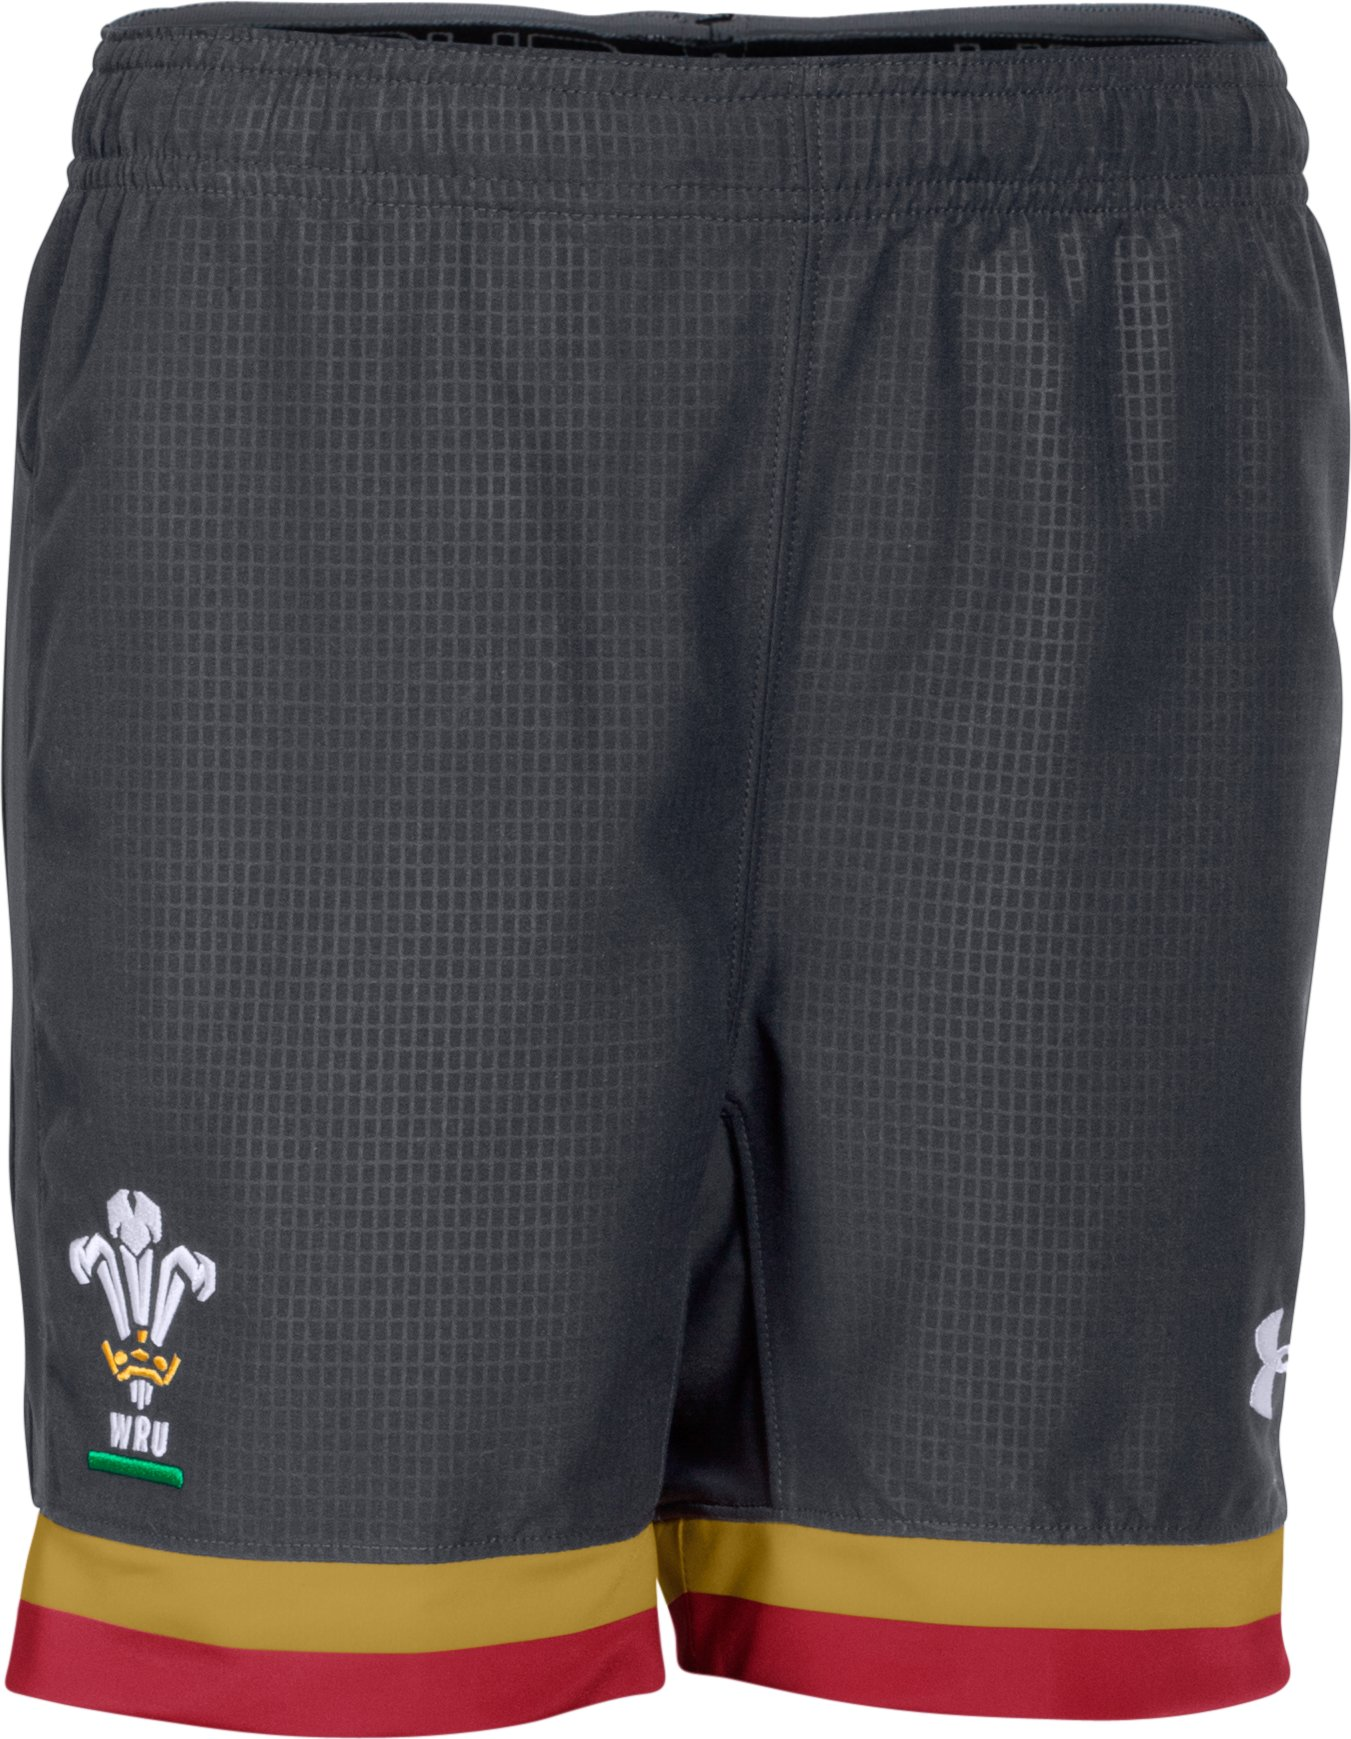 Boys' WRU Supporters 15/16 Shorts, ANTHRACITE